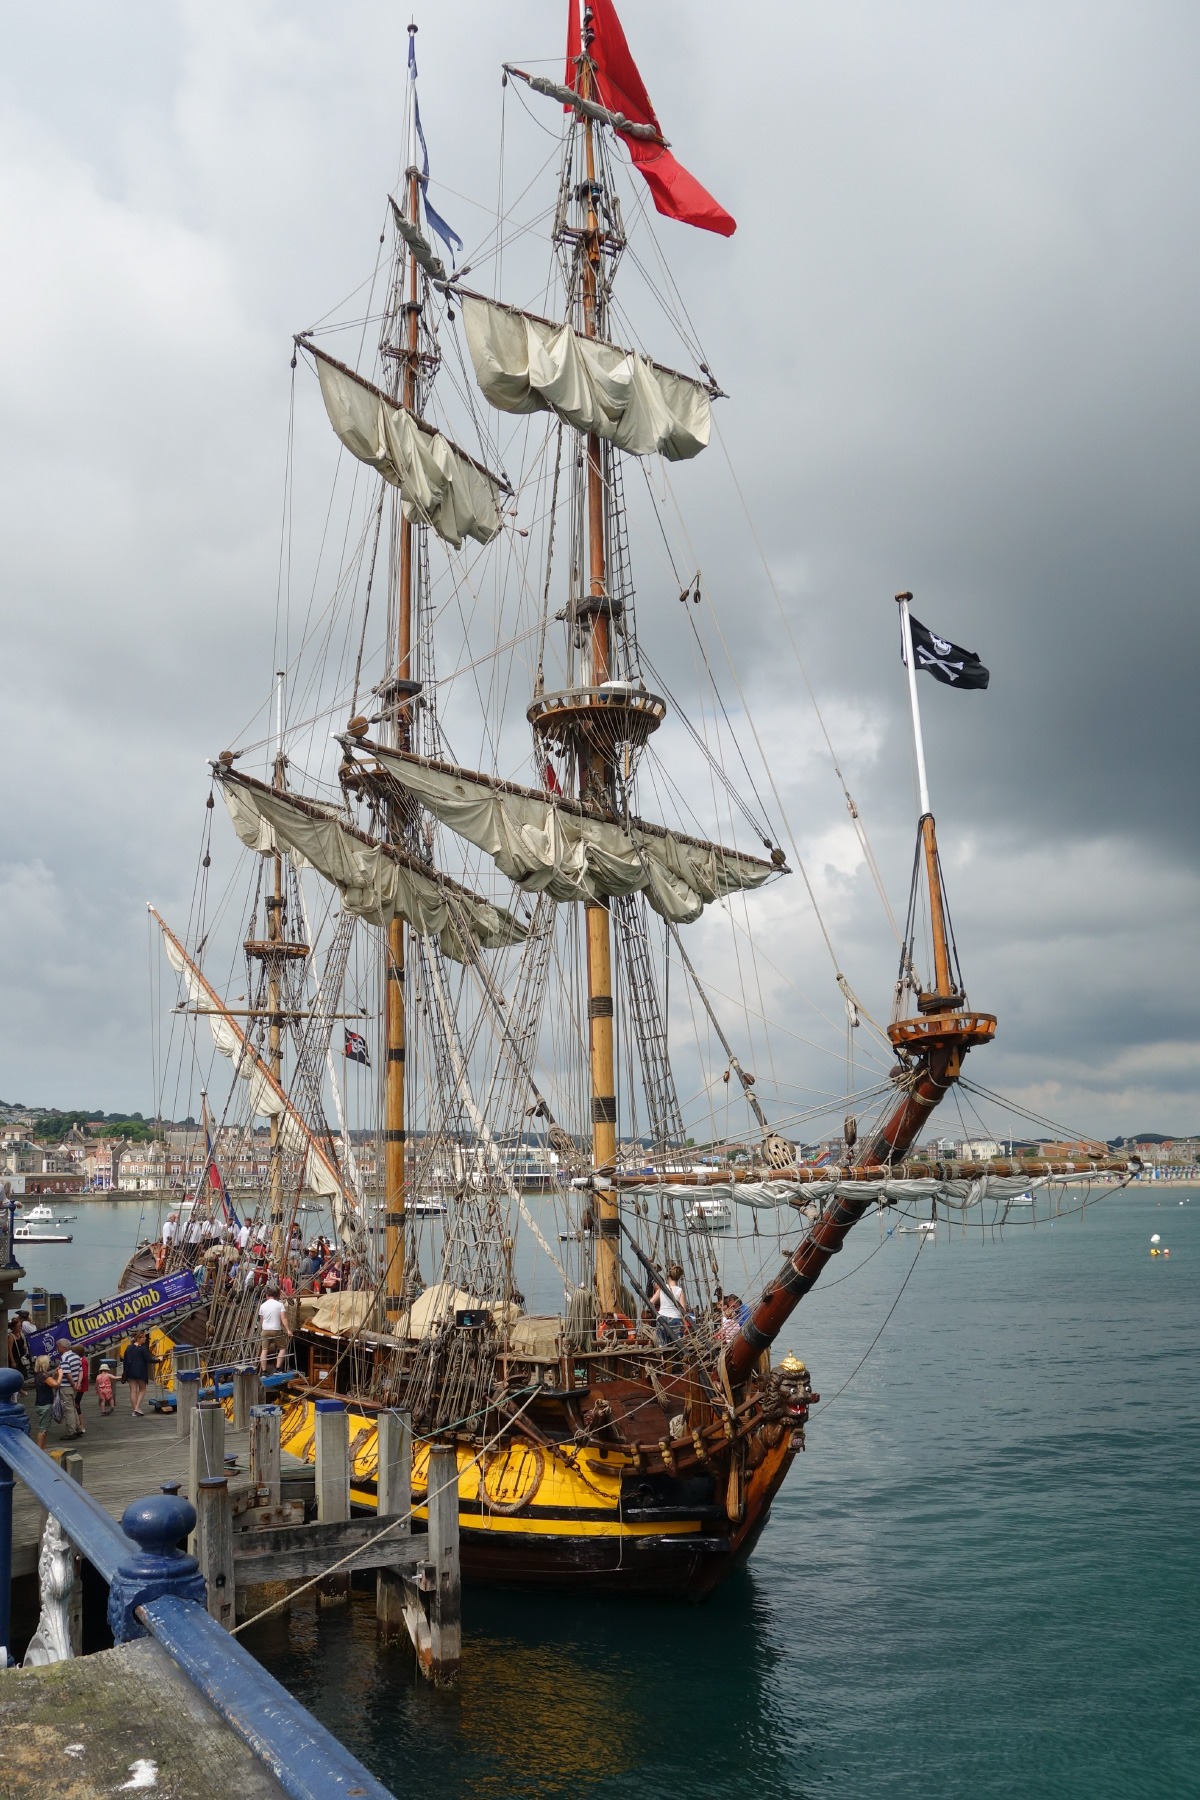 Purbeck Pirate Festival